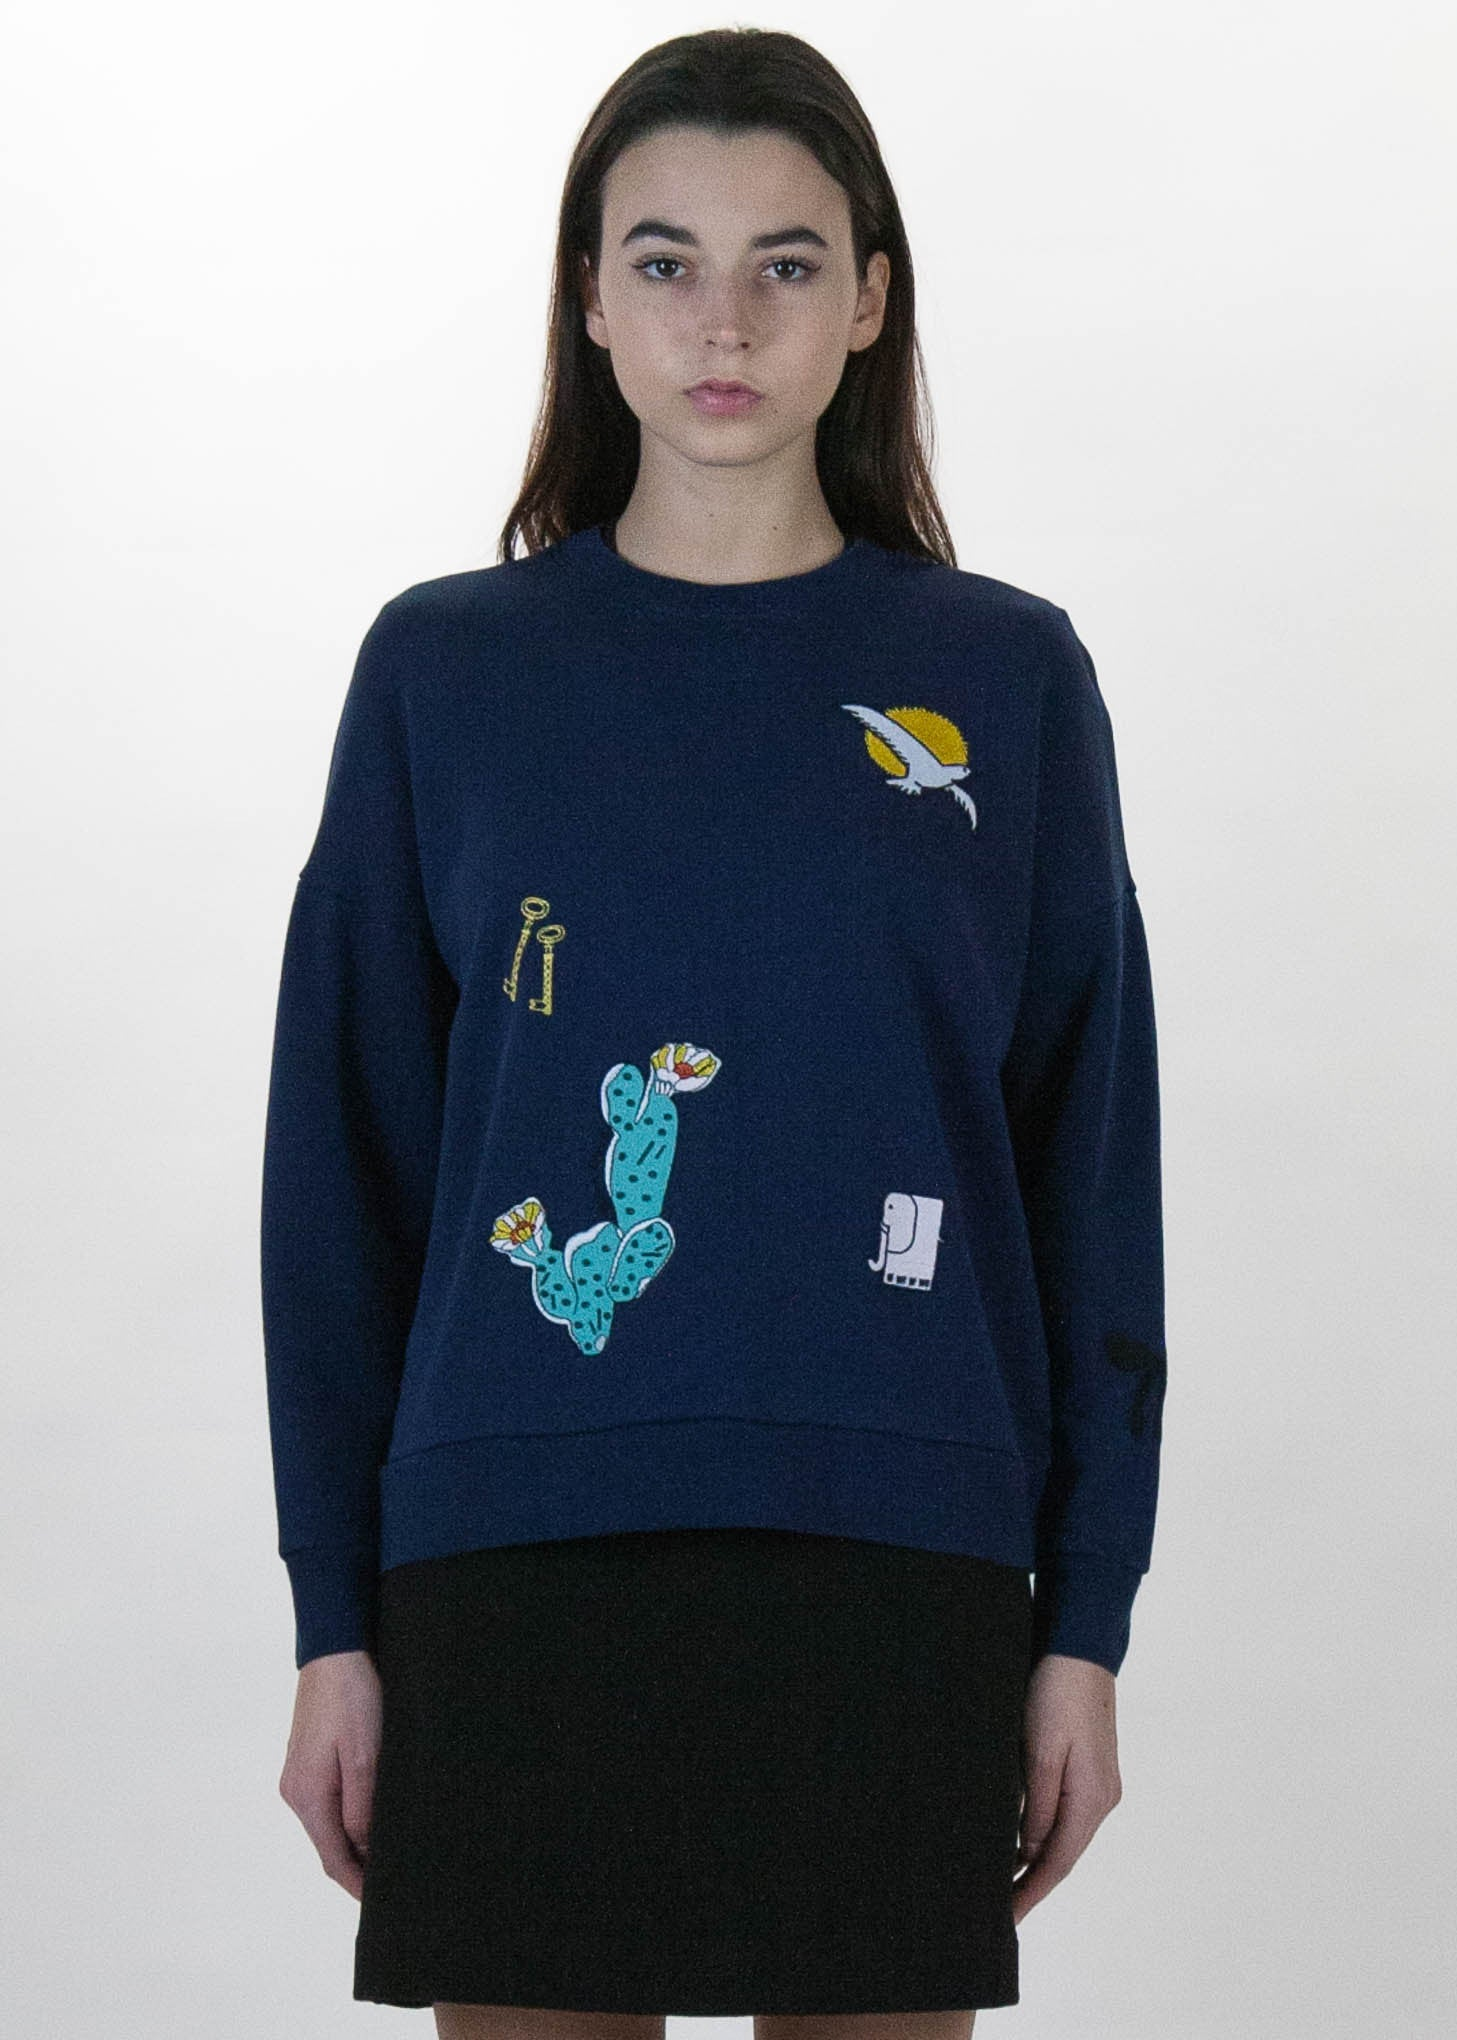 Navy Embroideries Sweatshirt